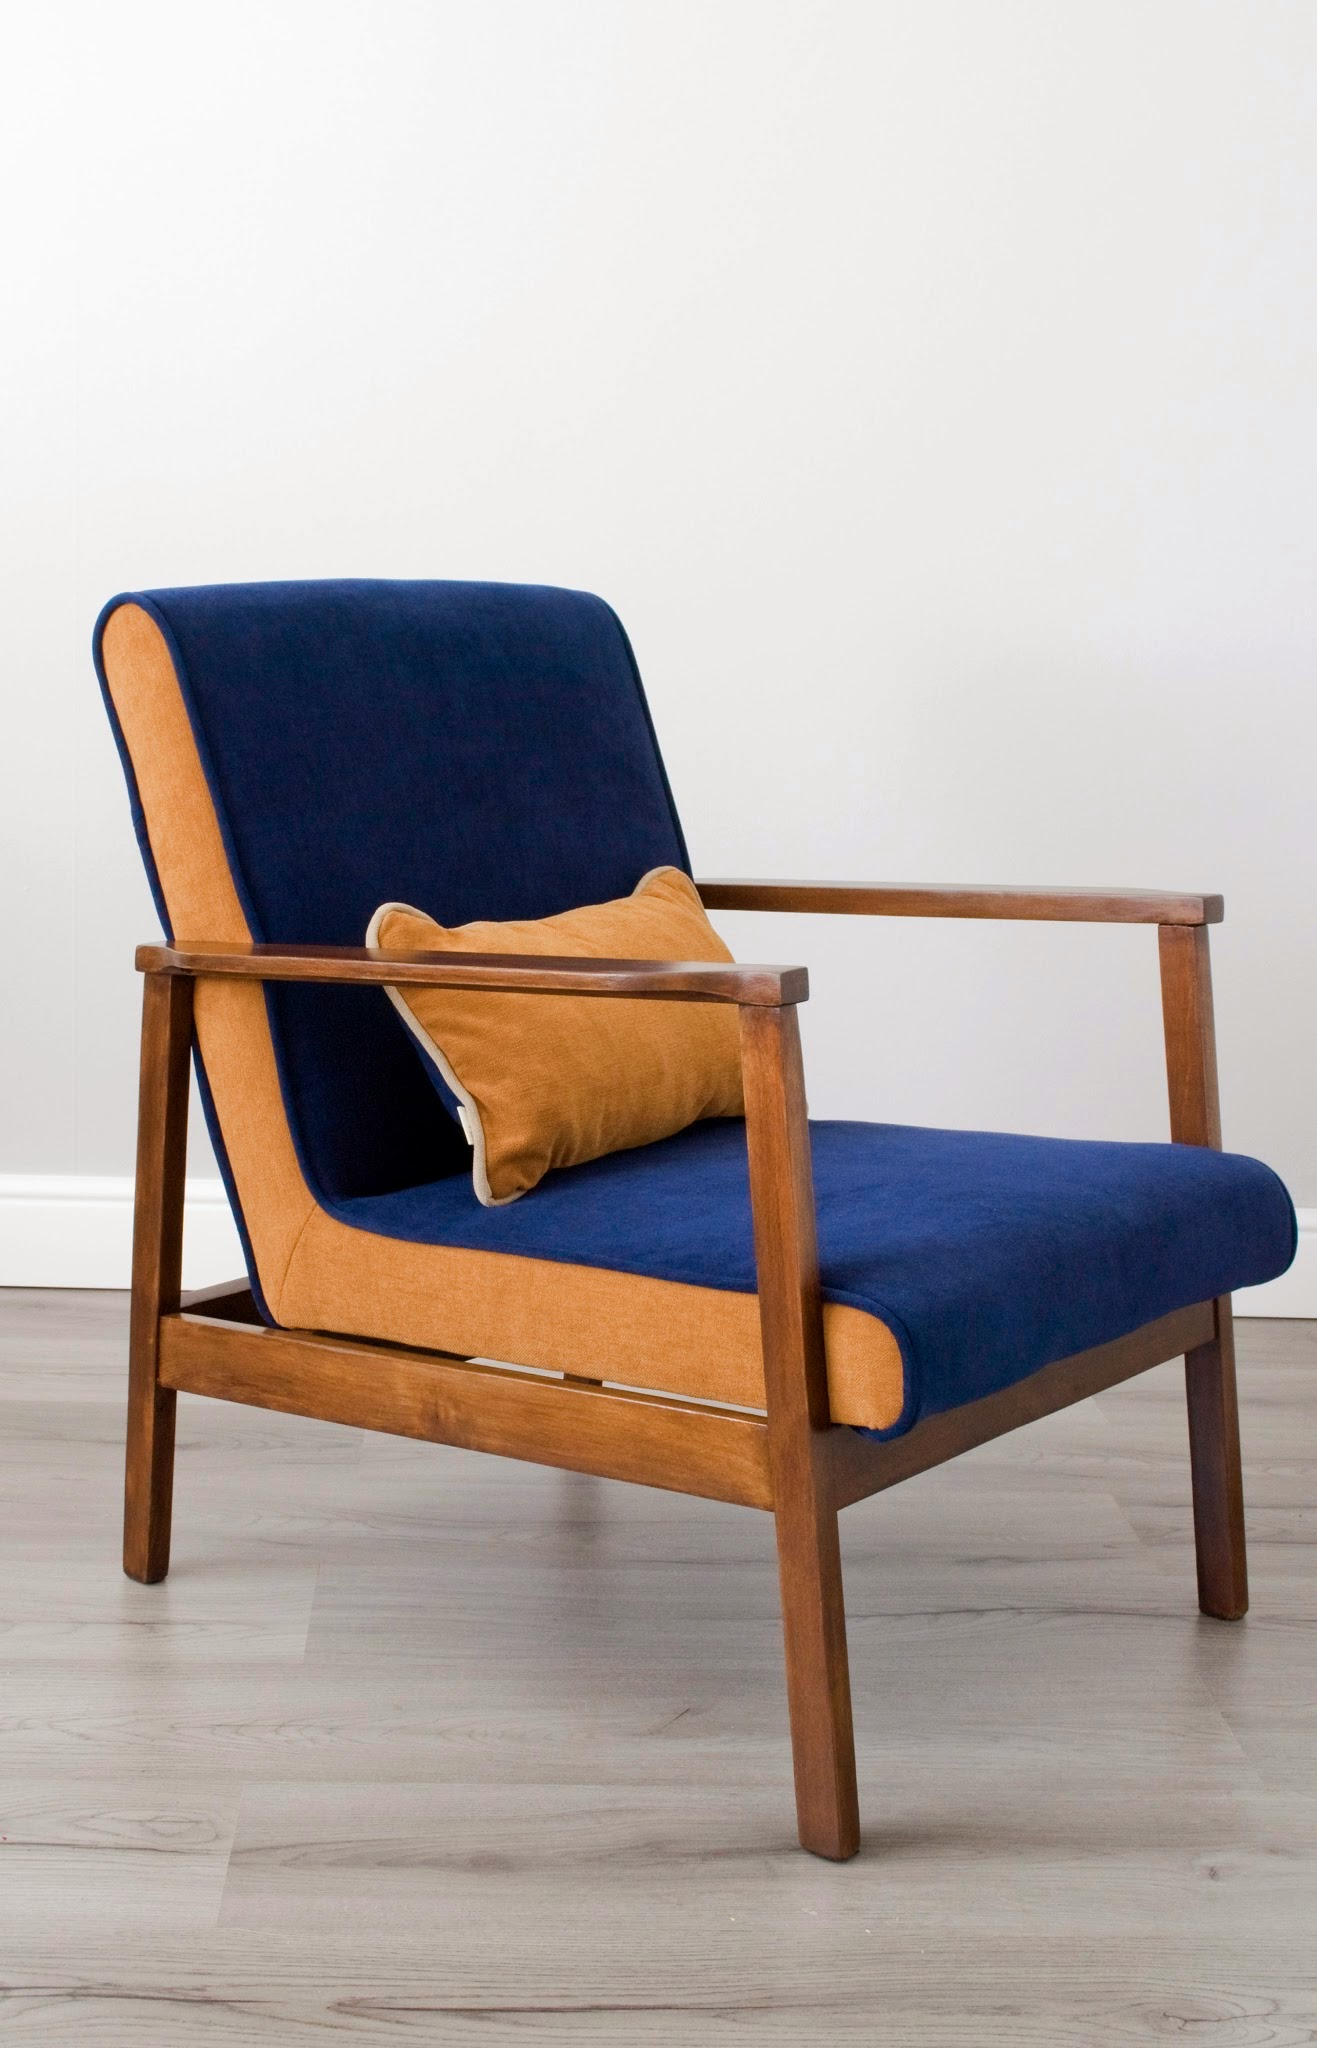 Stylish Furniture Modoo Home Upcycles Discarded Armchairs Into Stylish Home Furniture